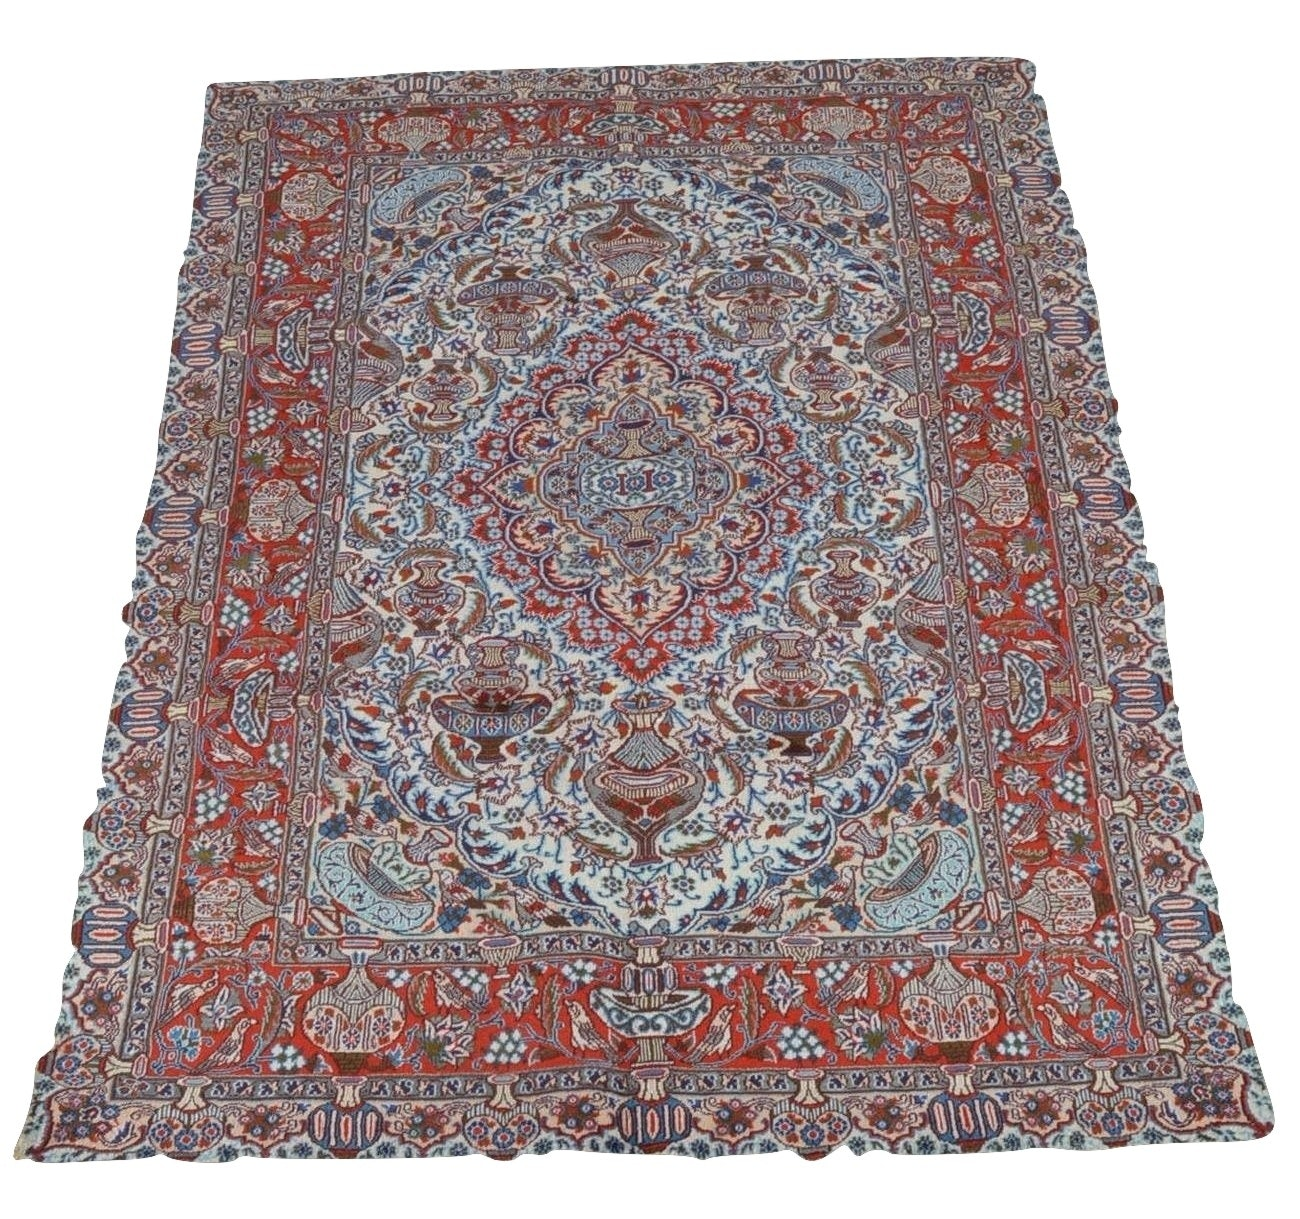 Room-Sized Hand-Knotted Persian Tabriz Vase Carpet